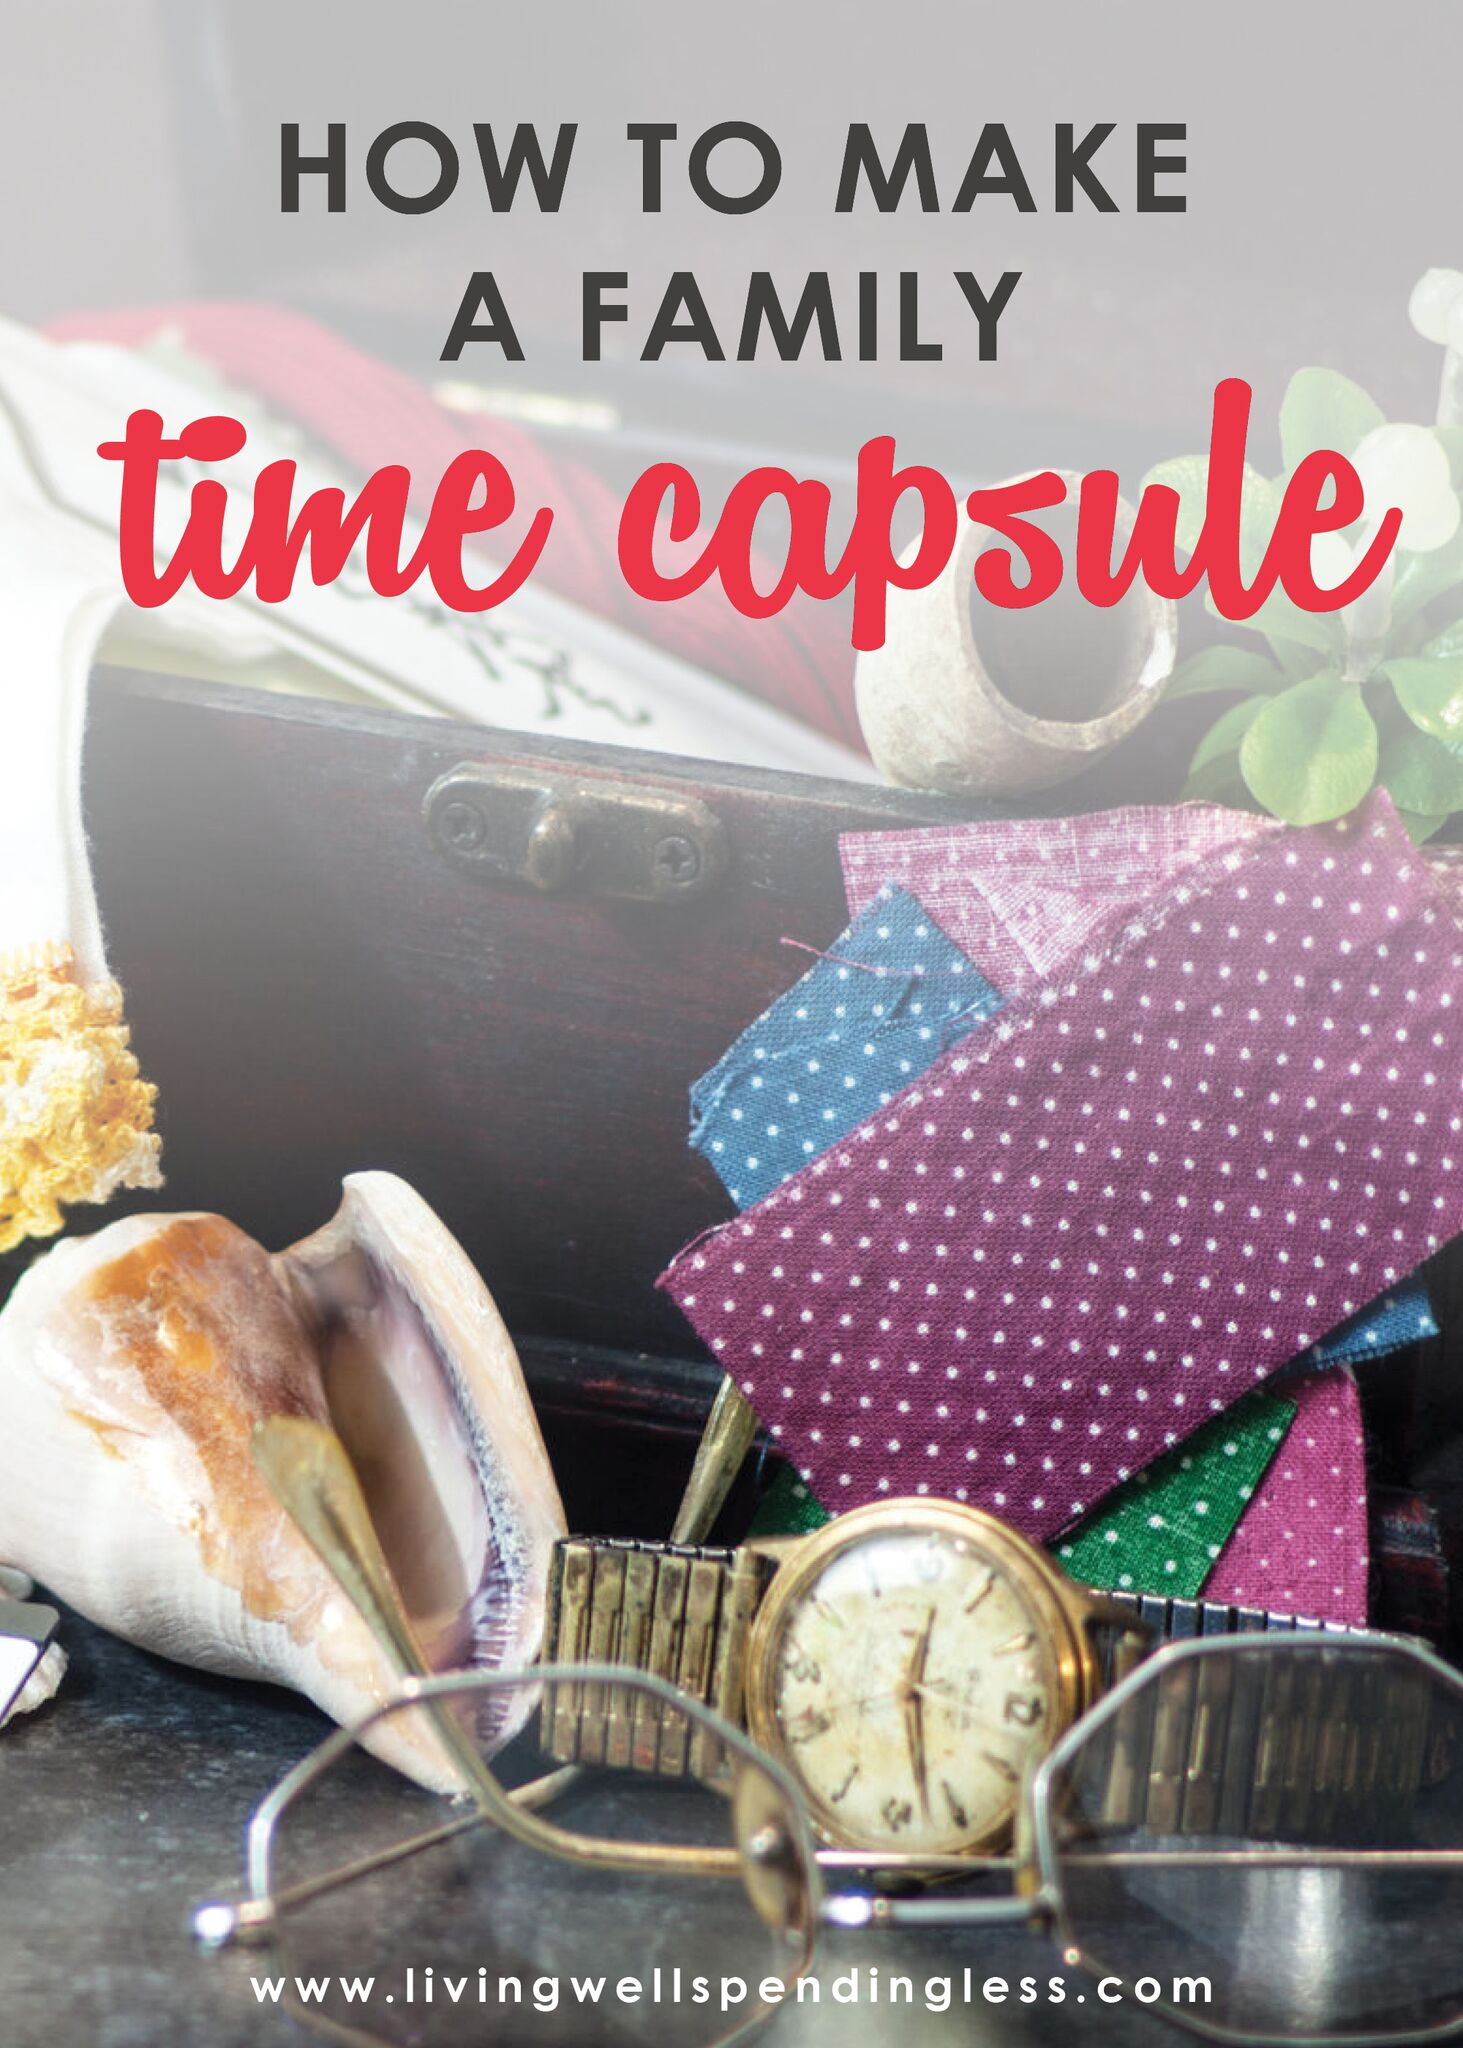 How to Make a Family Time Capsule